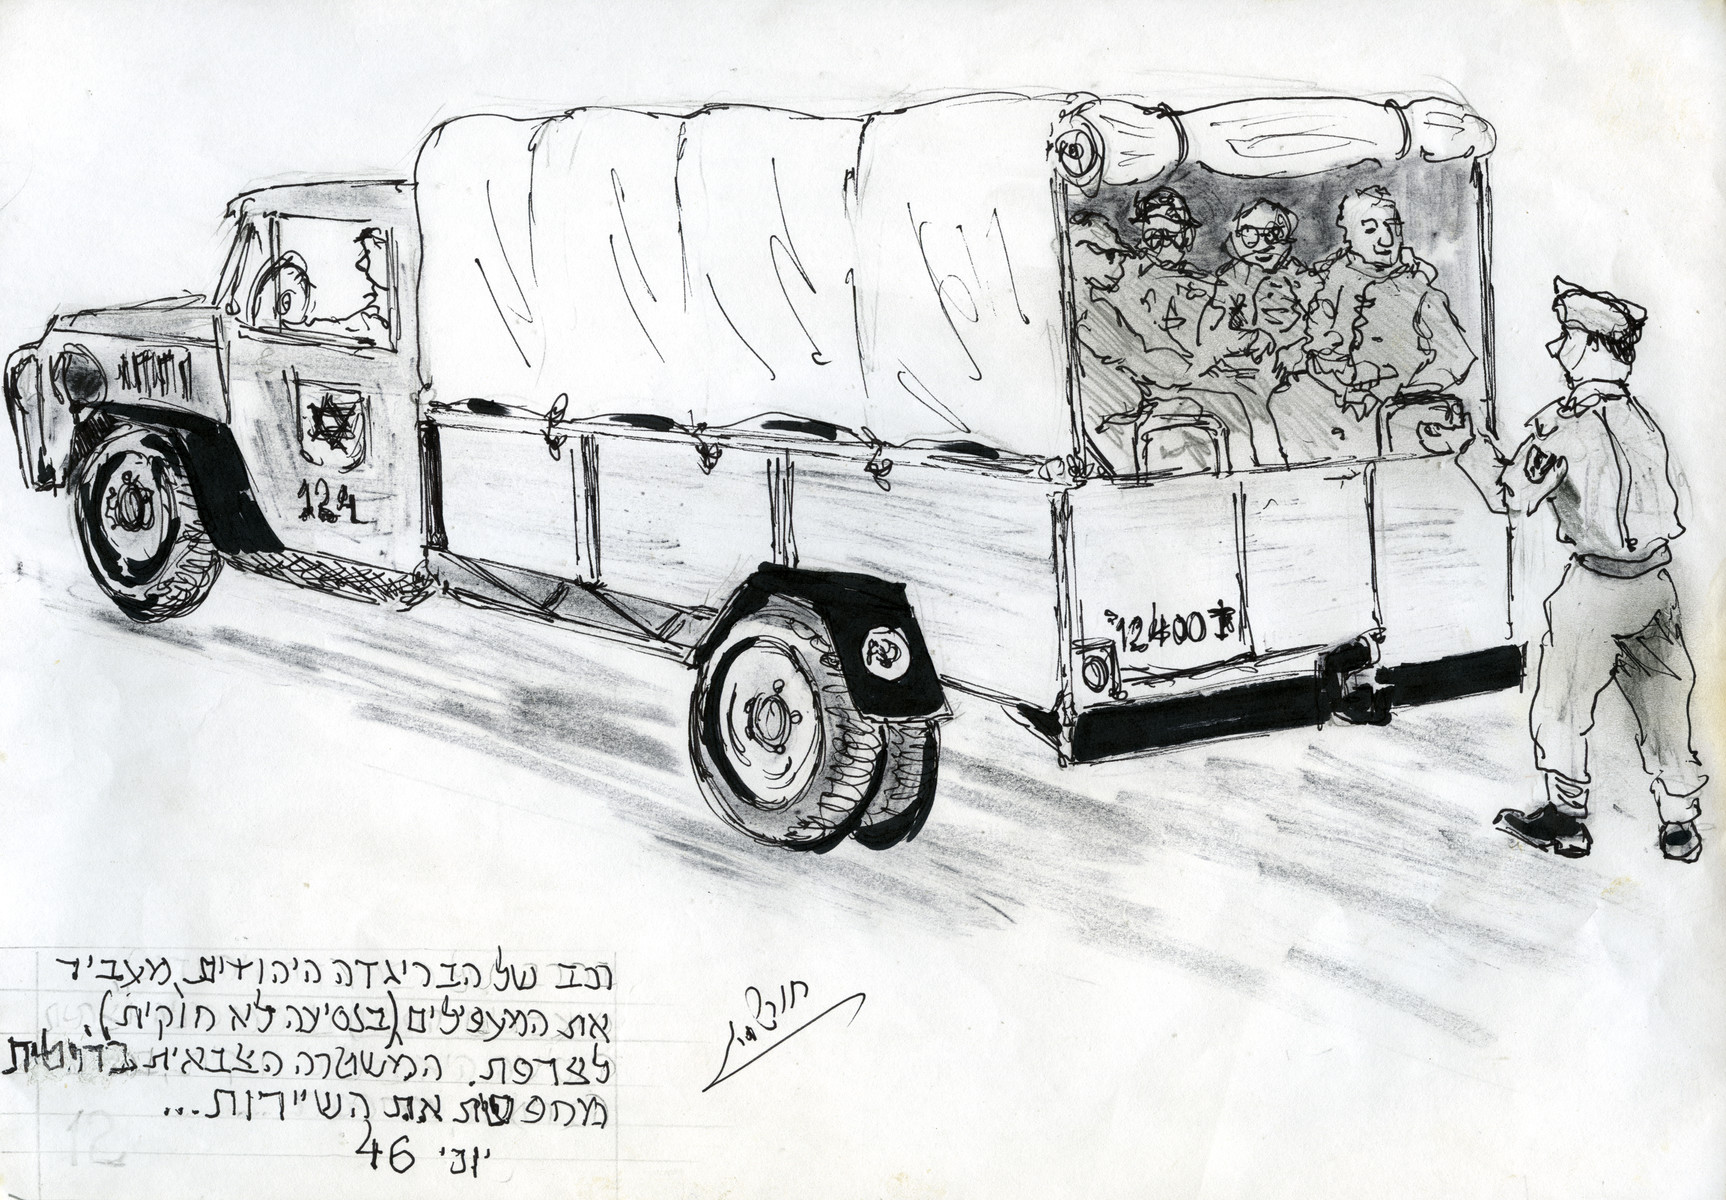 Page of a pictoral memoir drawn by the donor documenting his experiences after the Holocaust.  The drawing shows Jewish refugees in a Jewish Brigade truck en route to France.